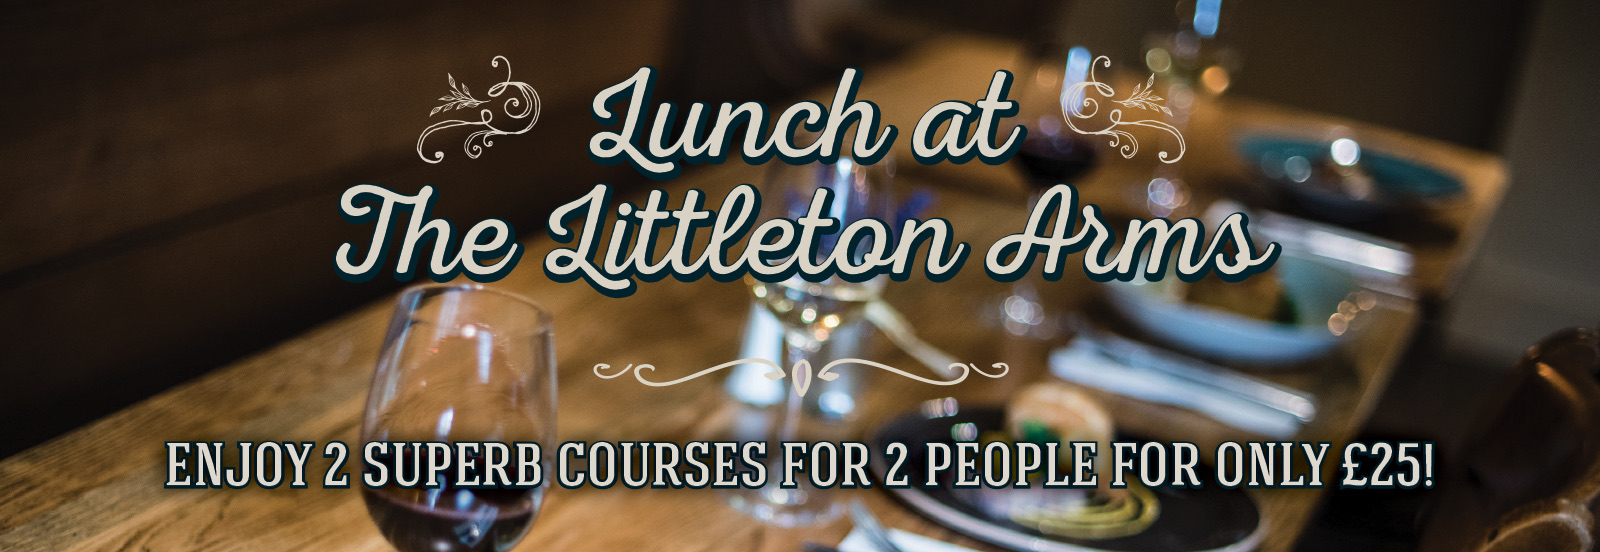 Lunch at The Littleton Arms – enjoy 2 superb courses for 2 people for only £25!